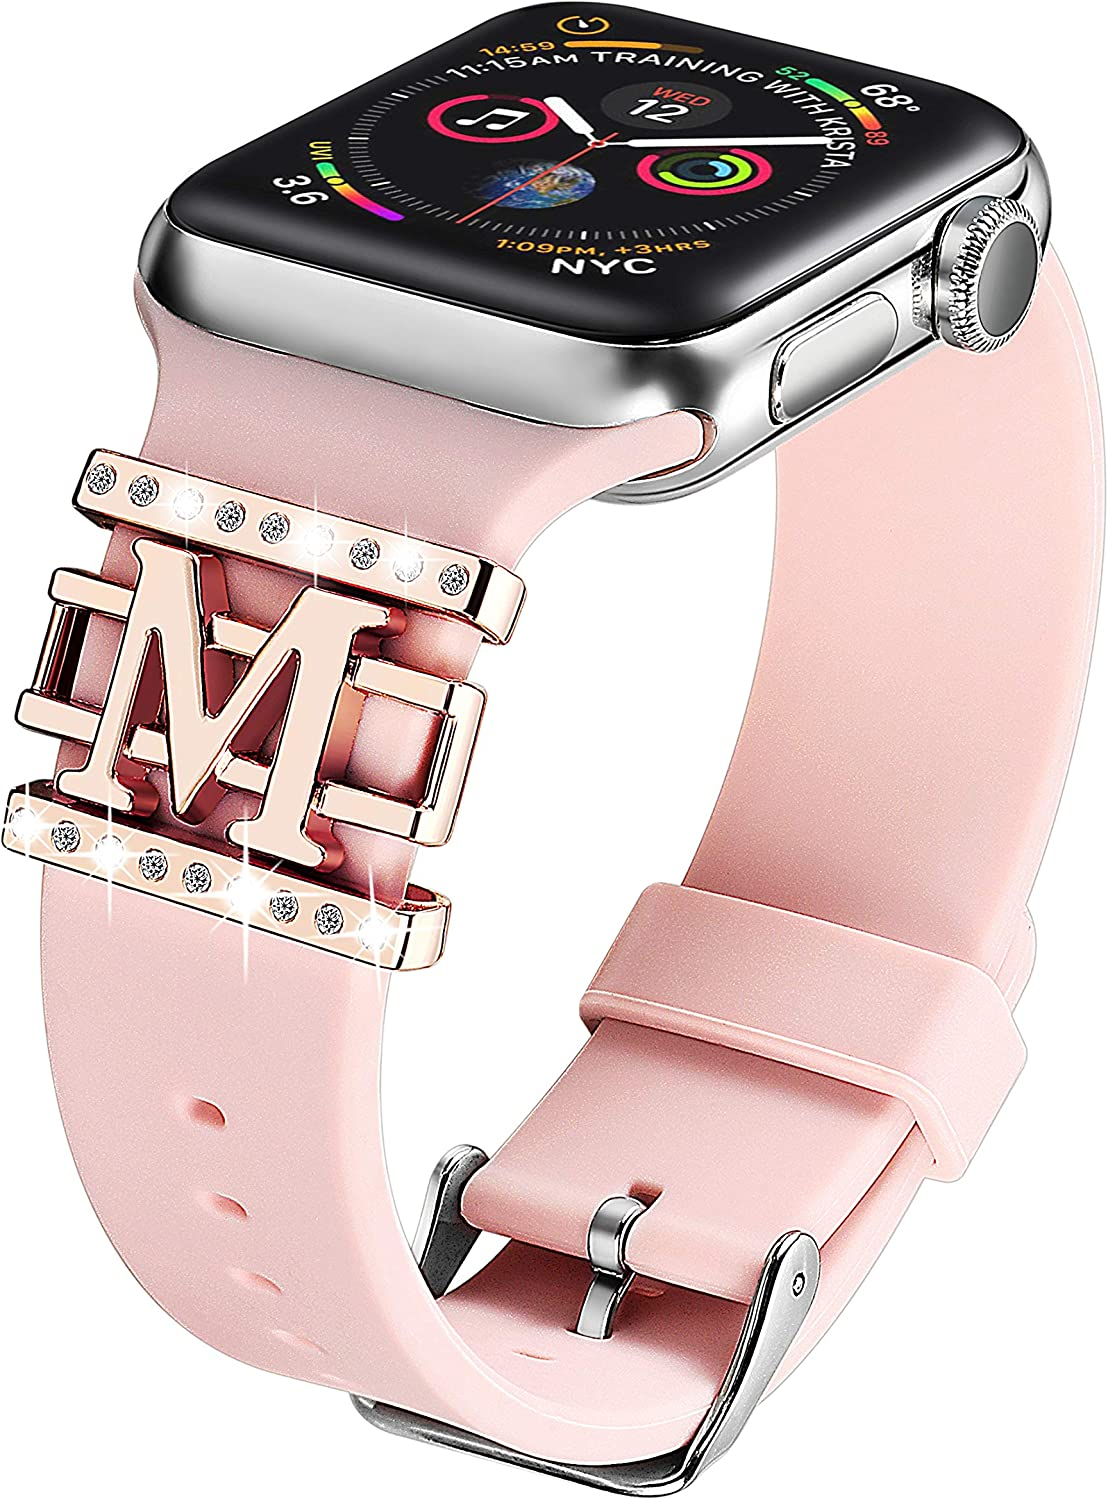 Compatible with Apple Watch Band Silicone 38mm 40mm,DMMG Apple Watch Band Accessories Decorative Rings Designed Pattern Watch Band Women,Replacement Apple Watch Band/iwatch Series 4 3 2 1(Pink)